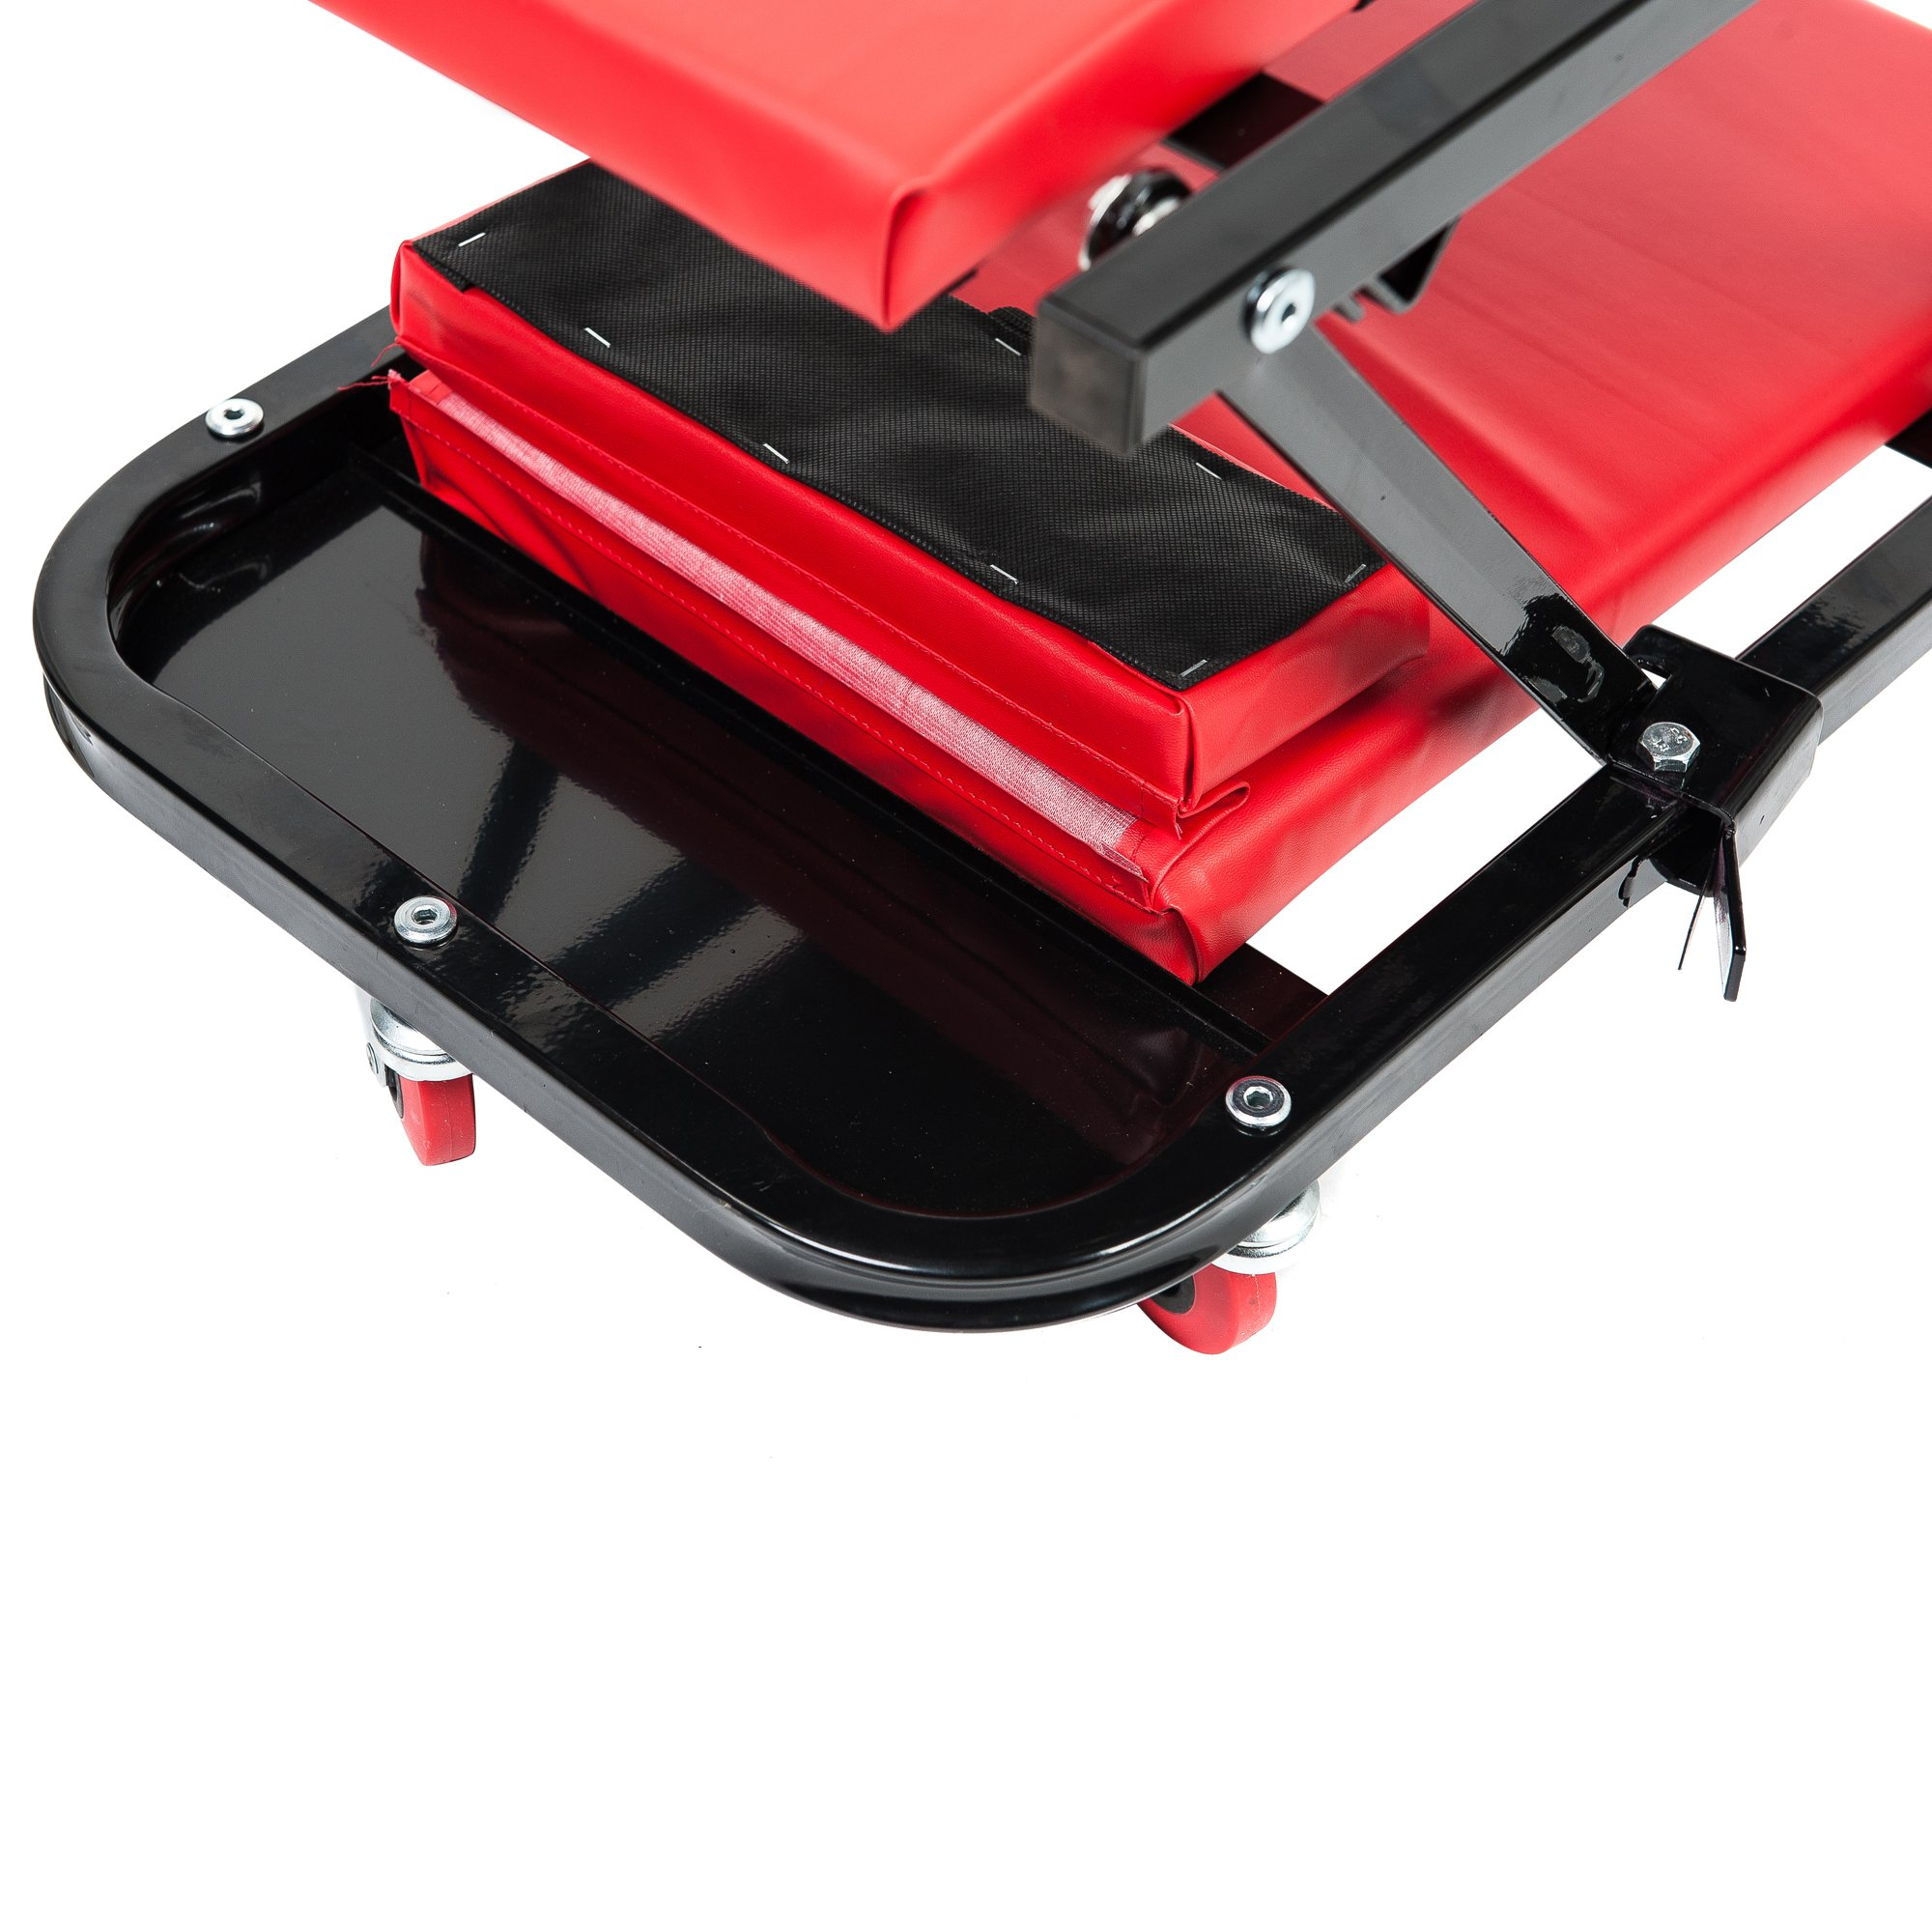 RTJ 47 Inch N-Creeper Seat with Adjustable Headrest, Red by RTJ (Image #5)